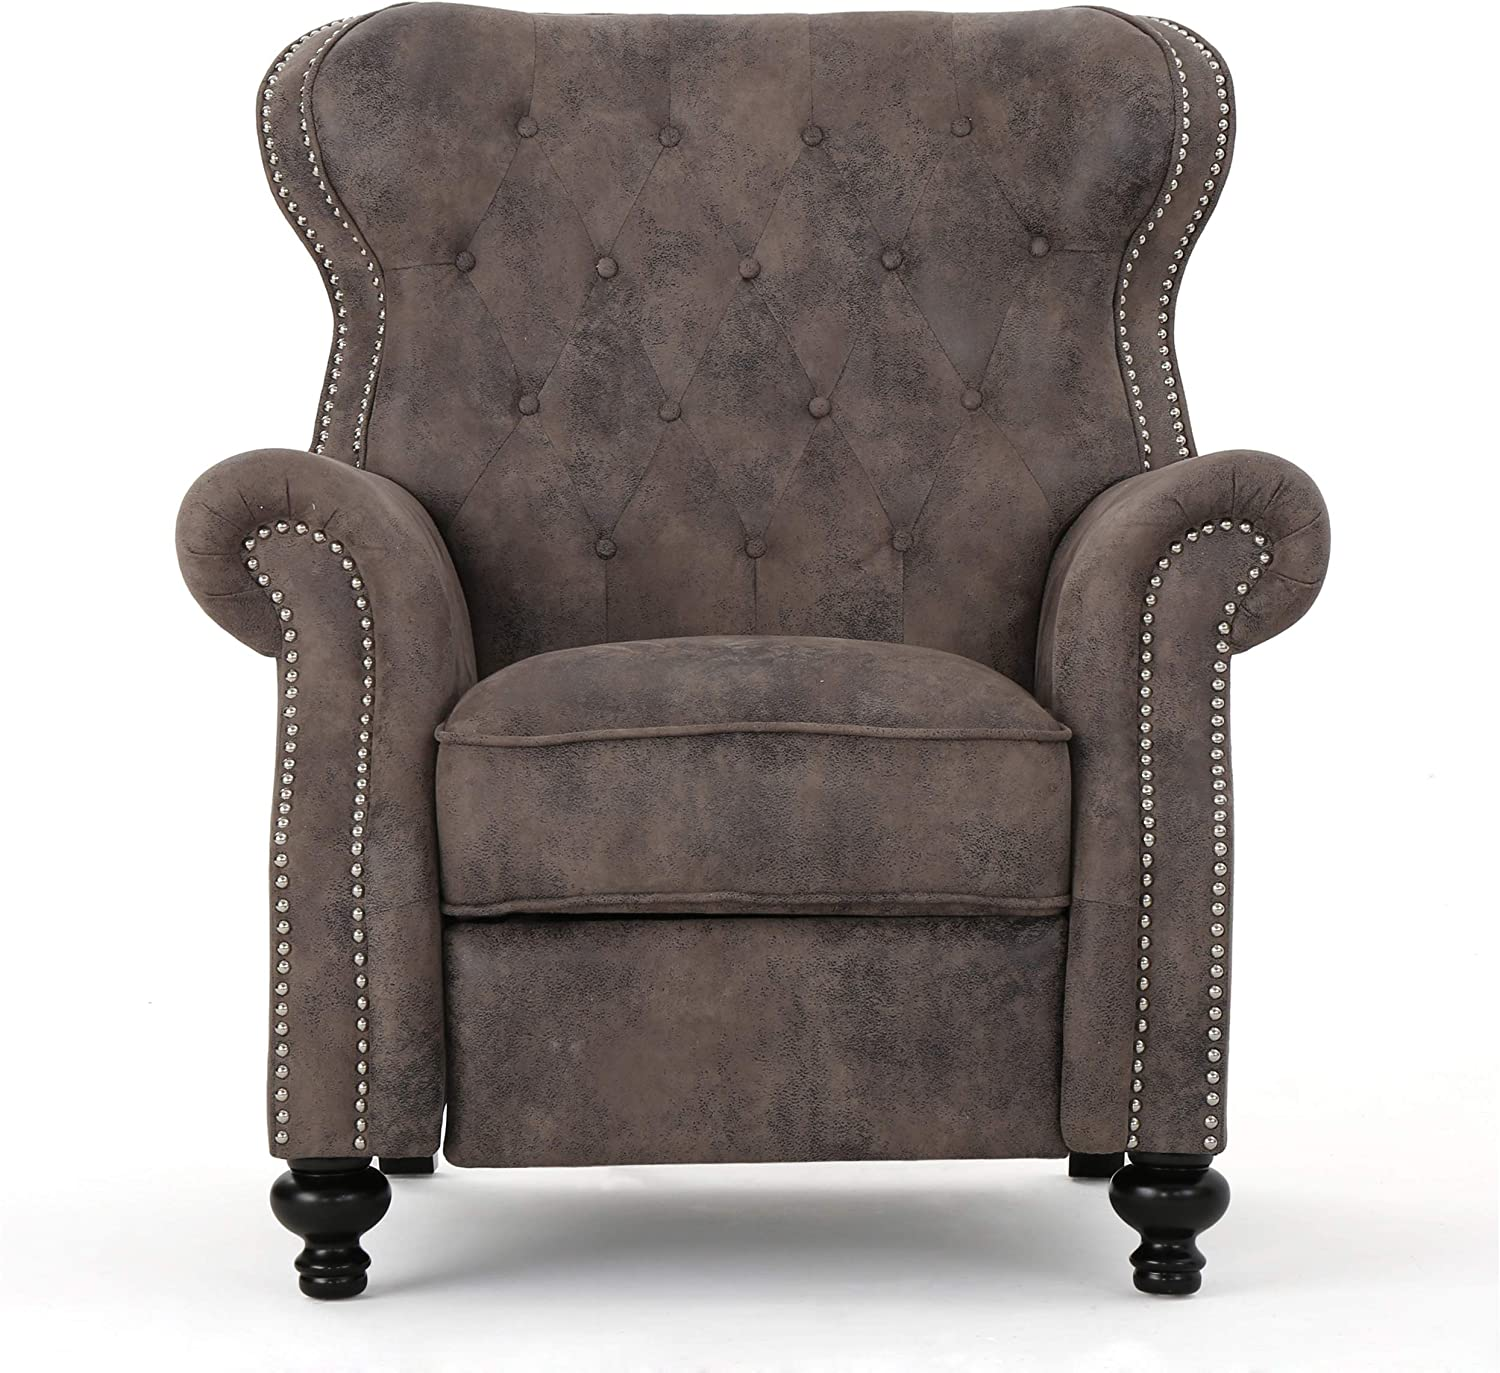 9.Furniture Waldo Tufted Wingback Recliner Chair